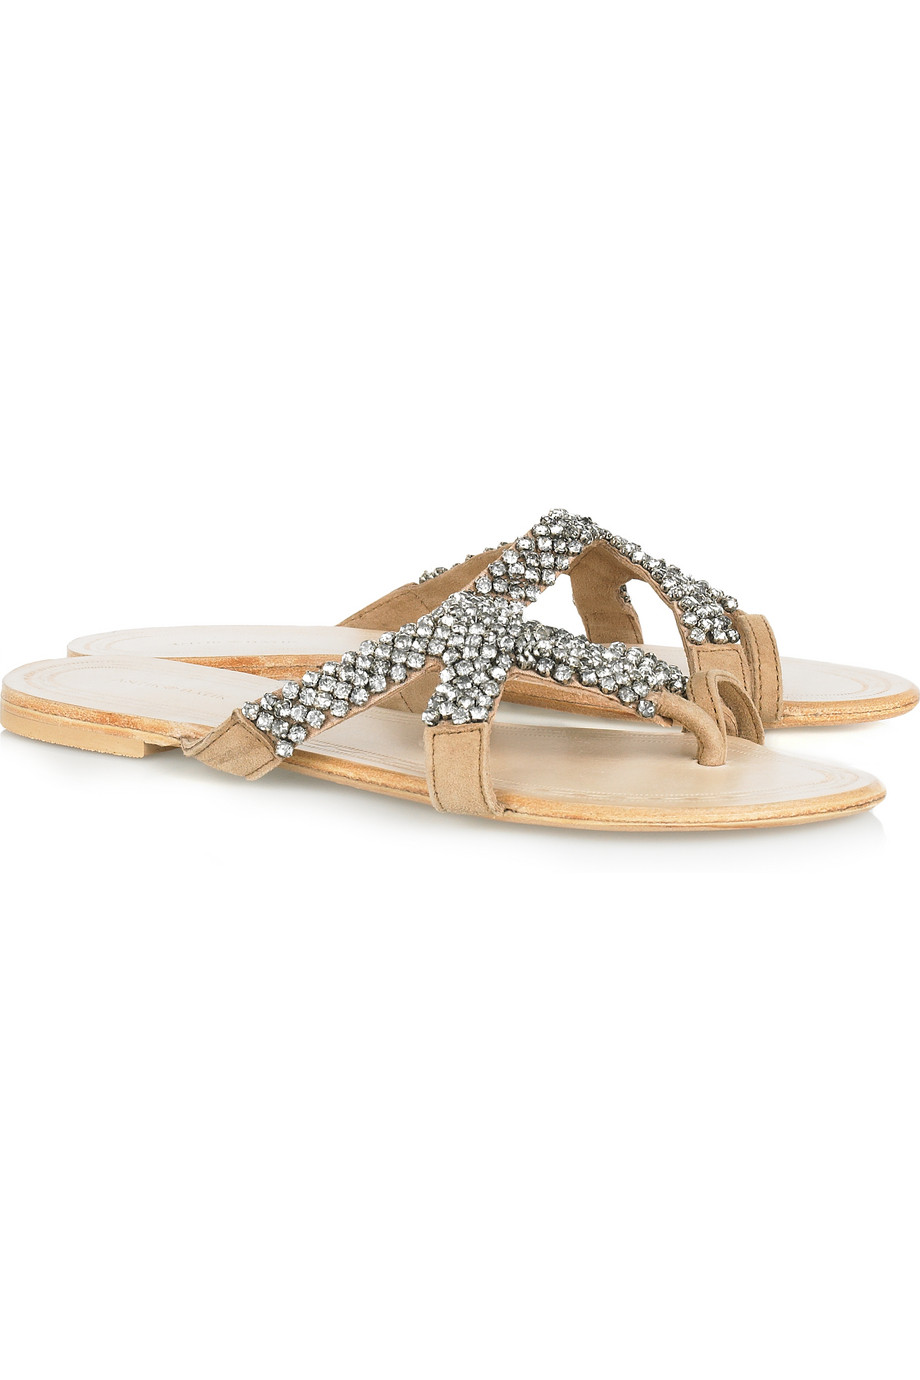 Crystal-embellished leather sandals  | Antik Batik | THE OUTNET